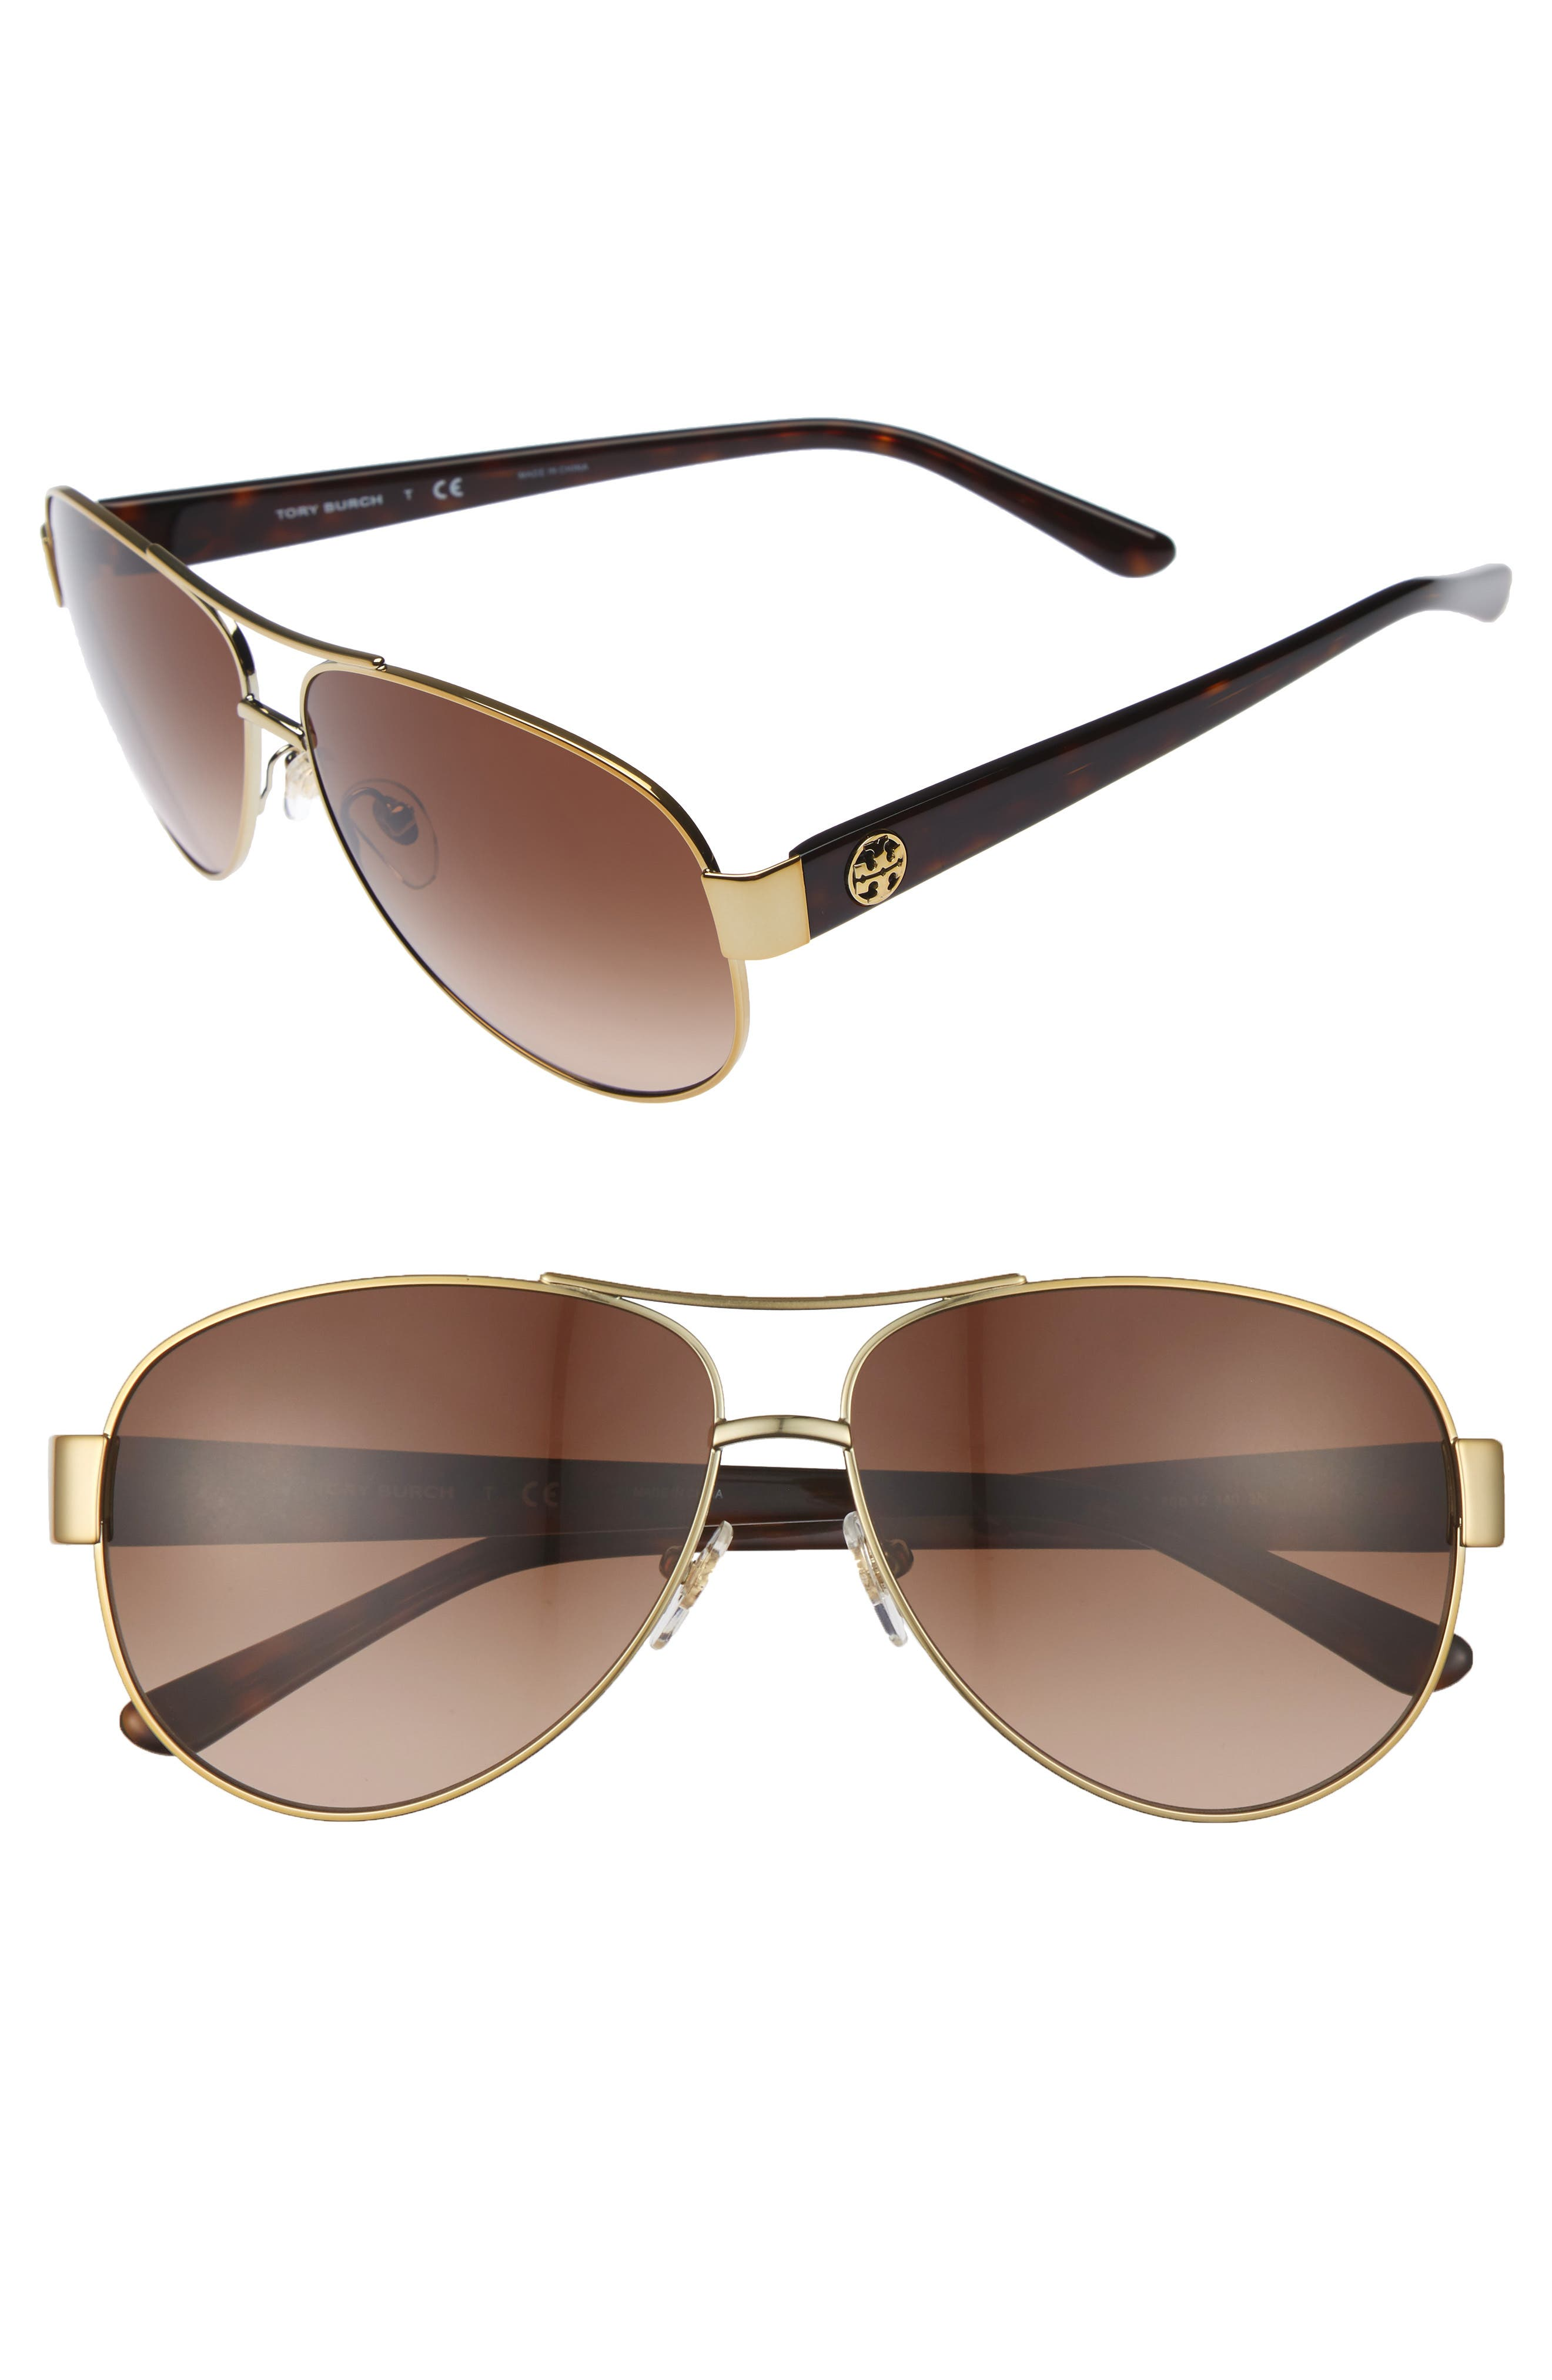 60mm Aviator Sunglasses,                             Main thumbnail 1, color,                             GOLD/ BROWN